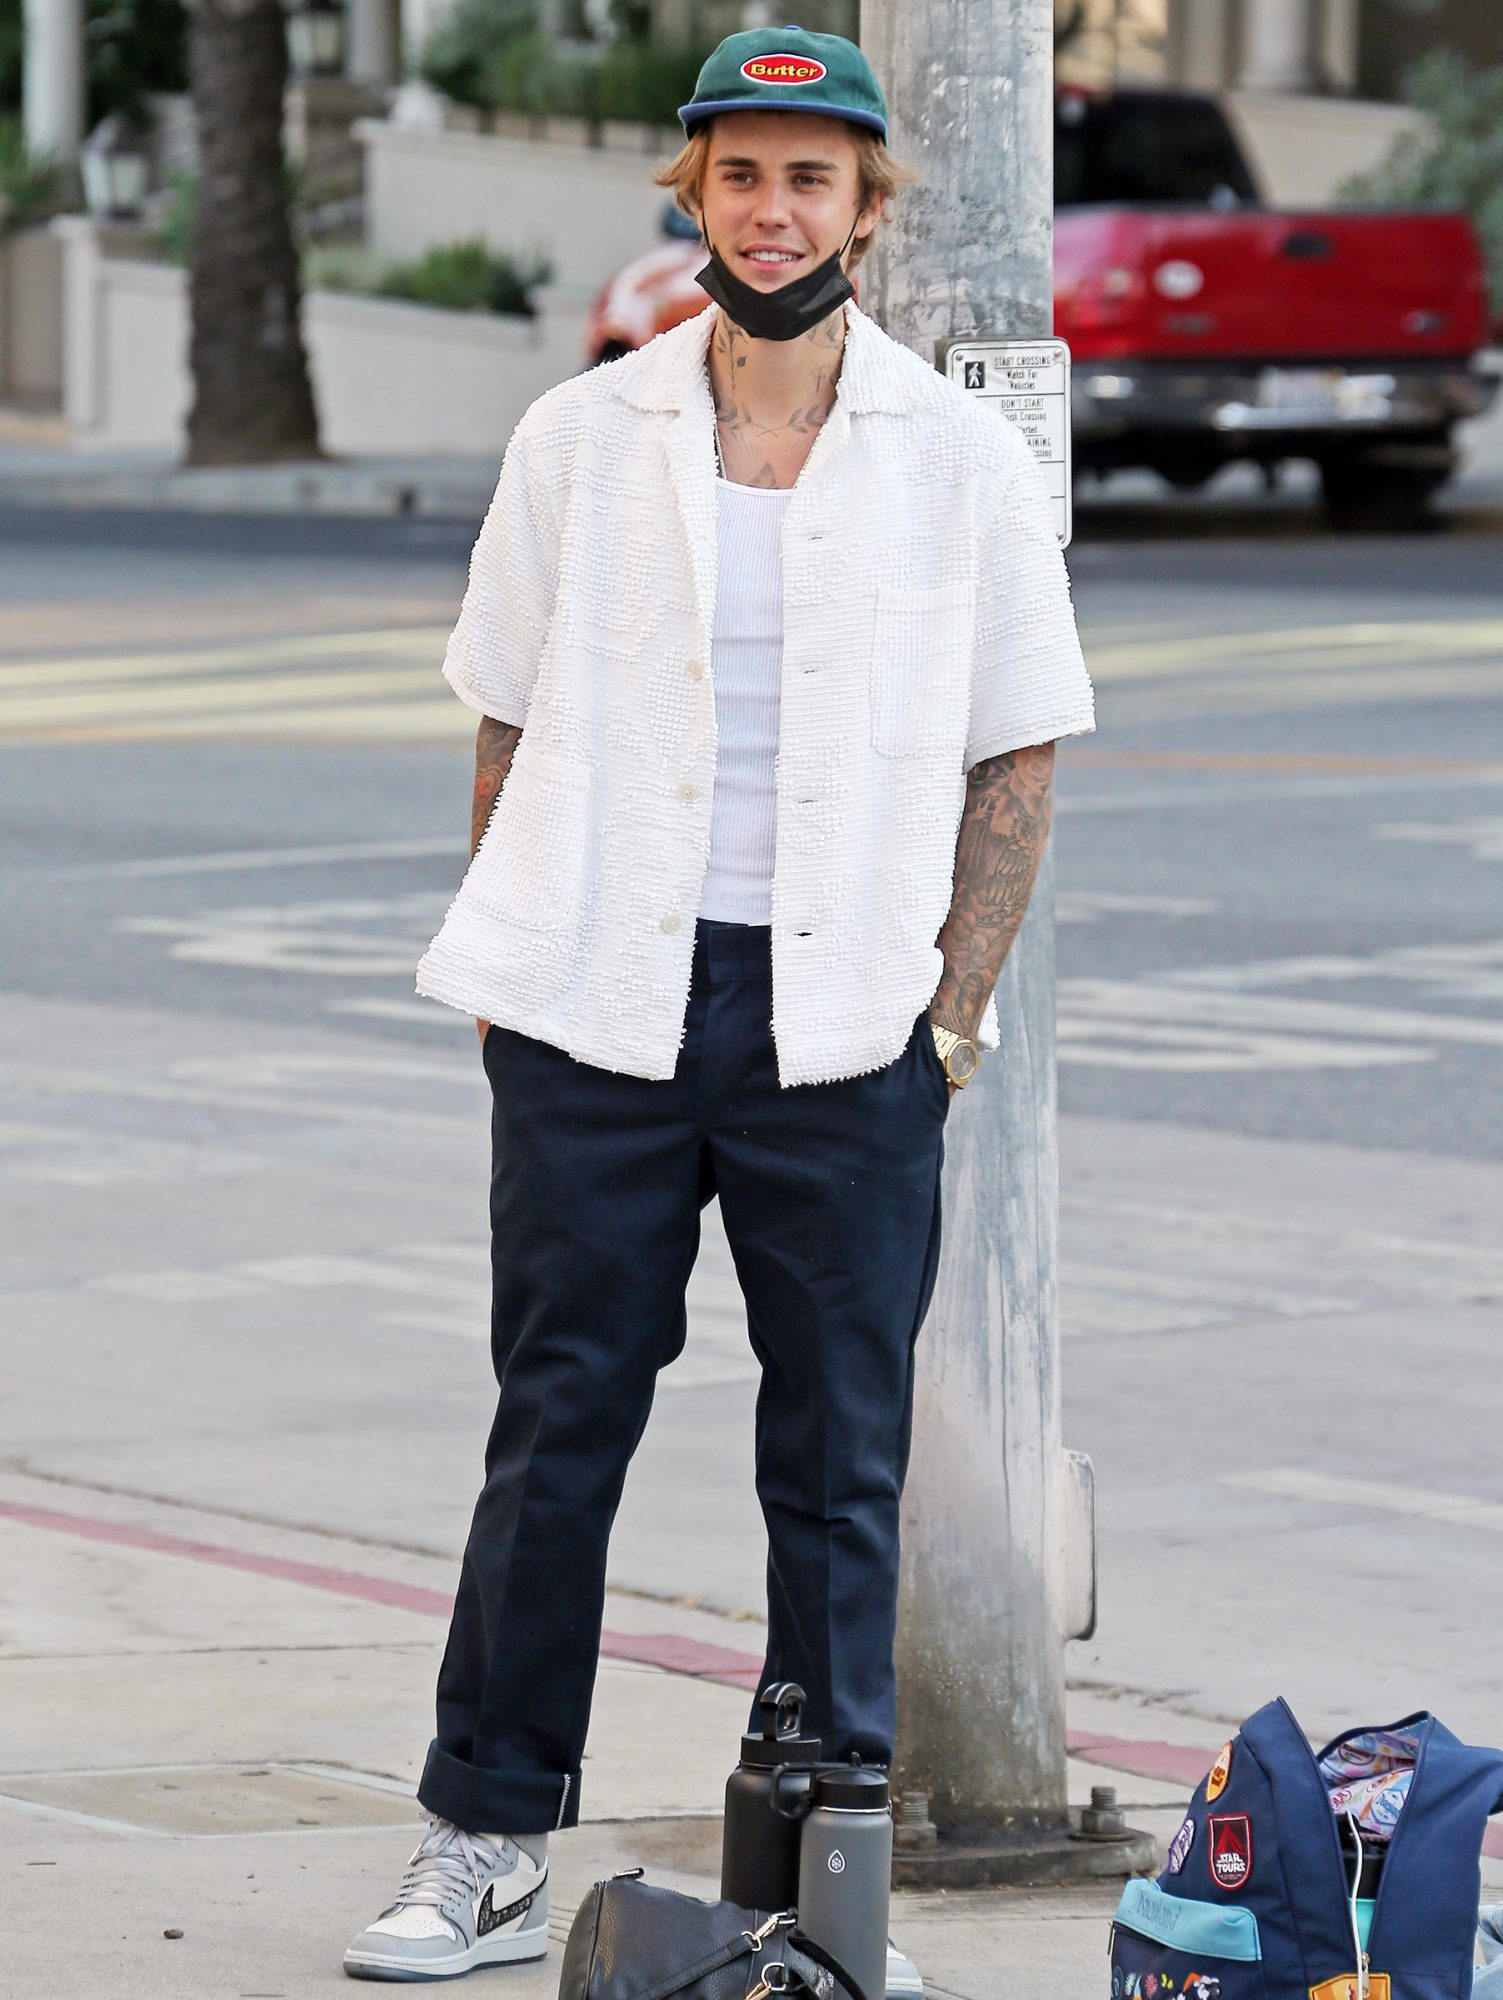 Justin Bieber shooting video clip for his album at a fire department in Los Angeles